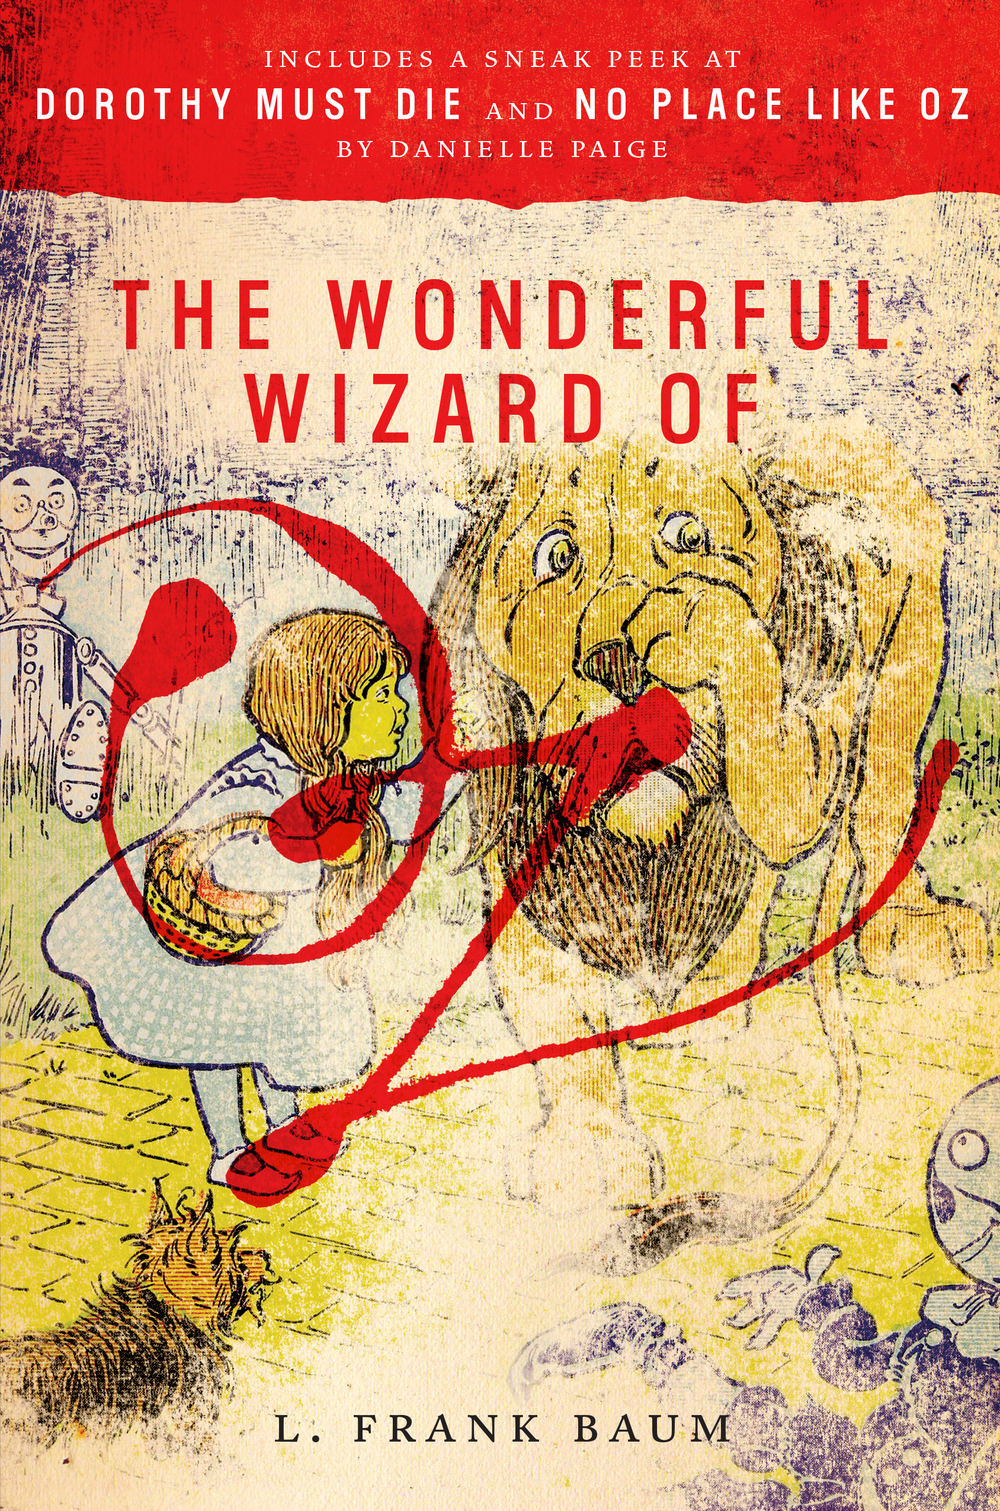 Ray Shappell_The Wonderful Wizard of Oz Epub c.jpg